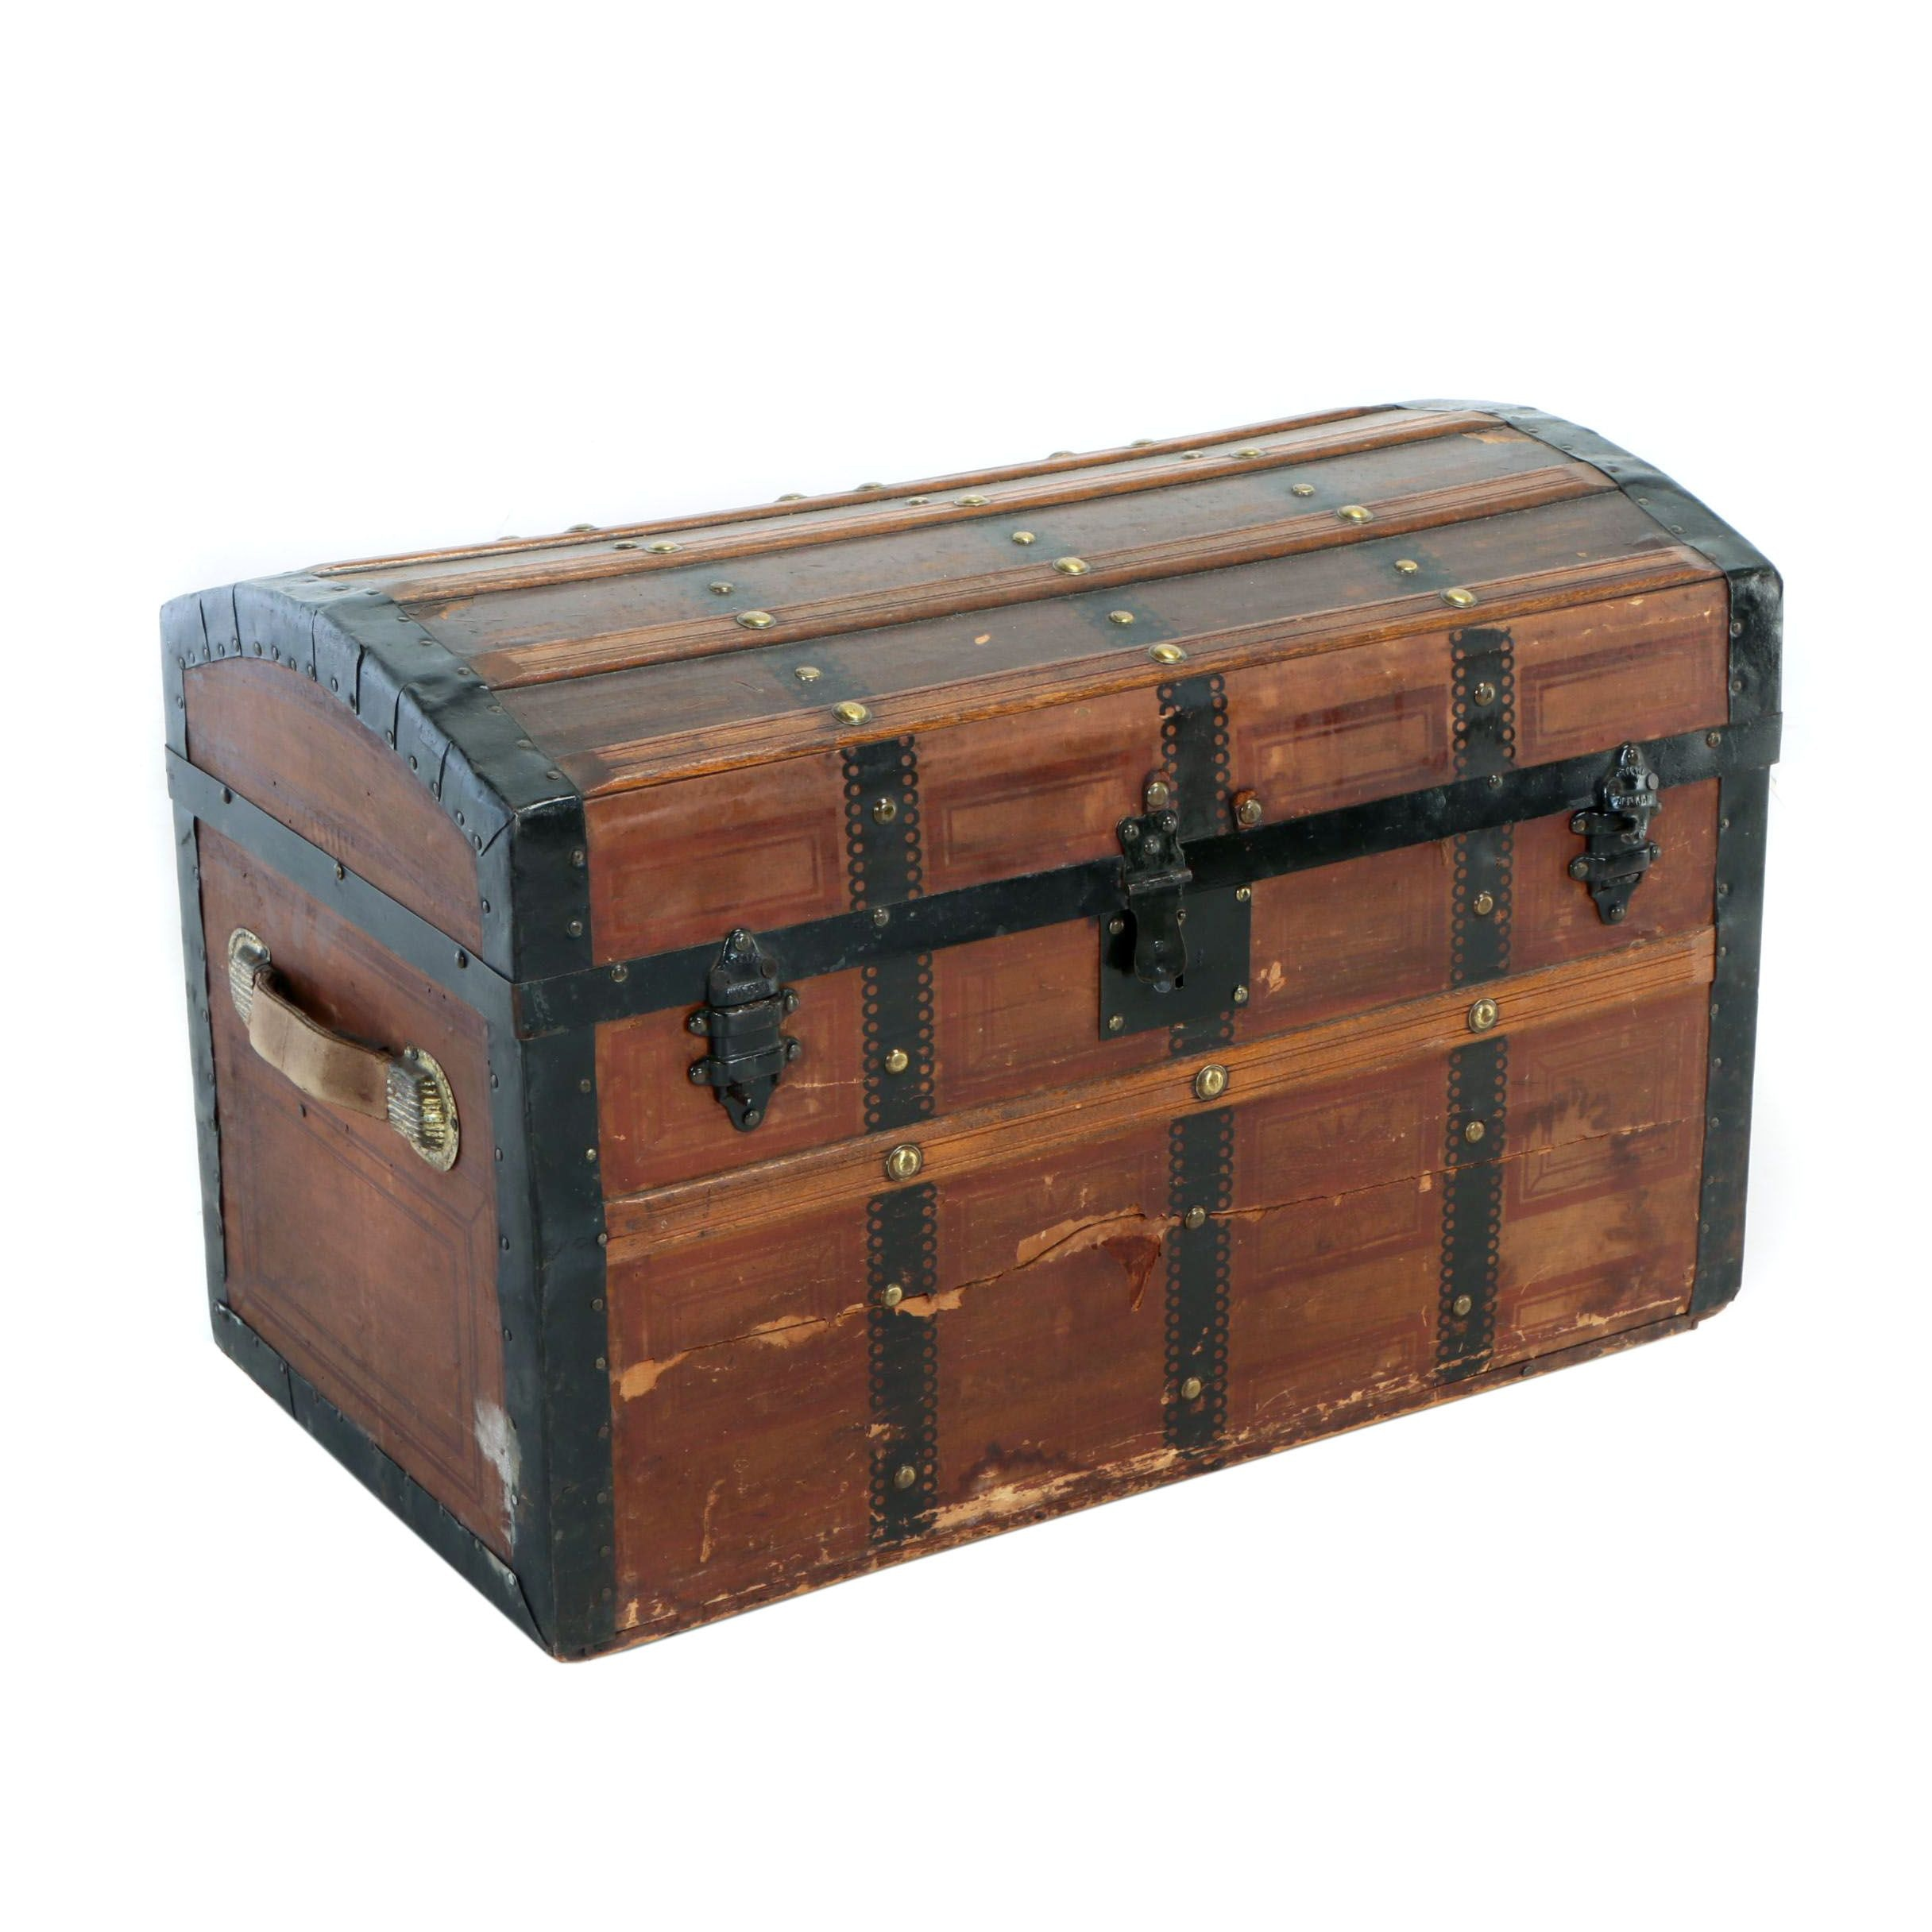 Paper-Decorated and Metal-Bound Wooden Dome-Top Steamer Trunk, Late 19th Century